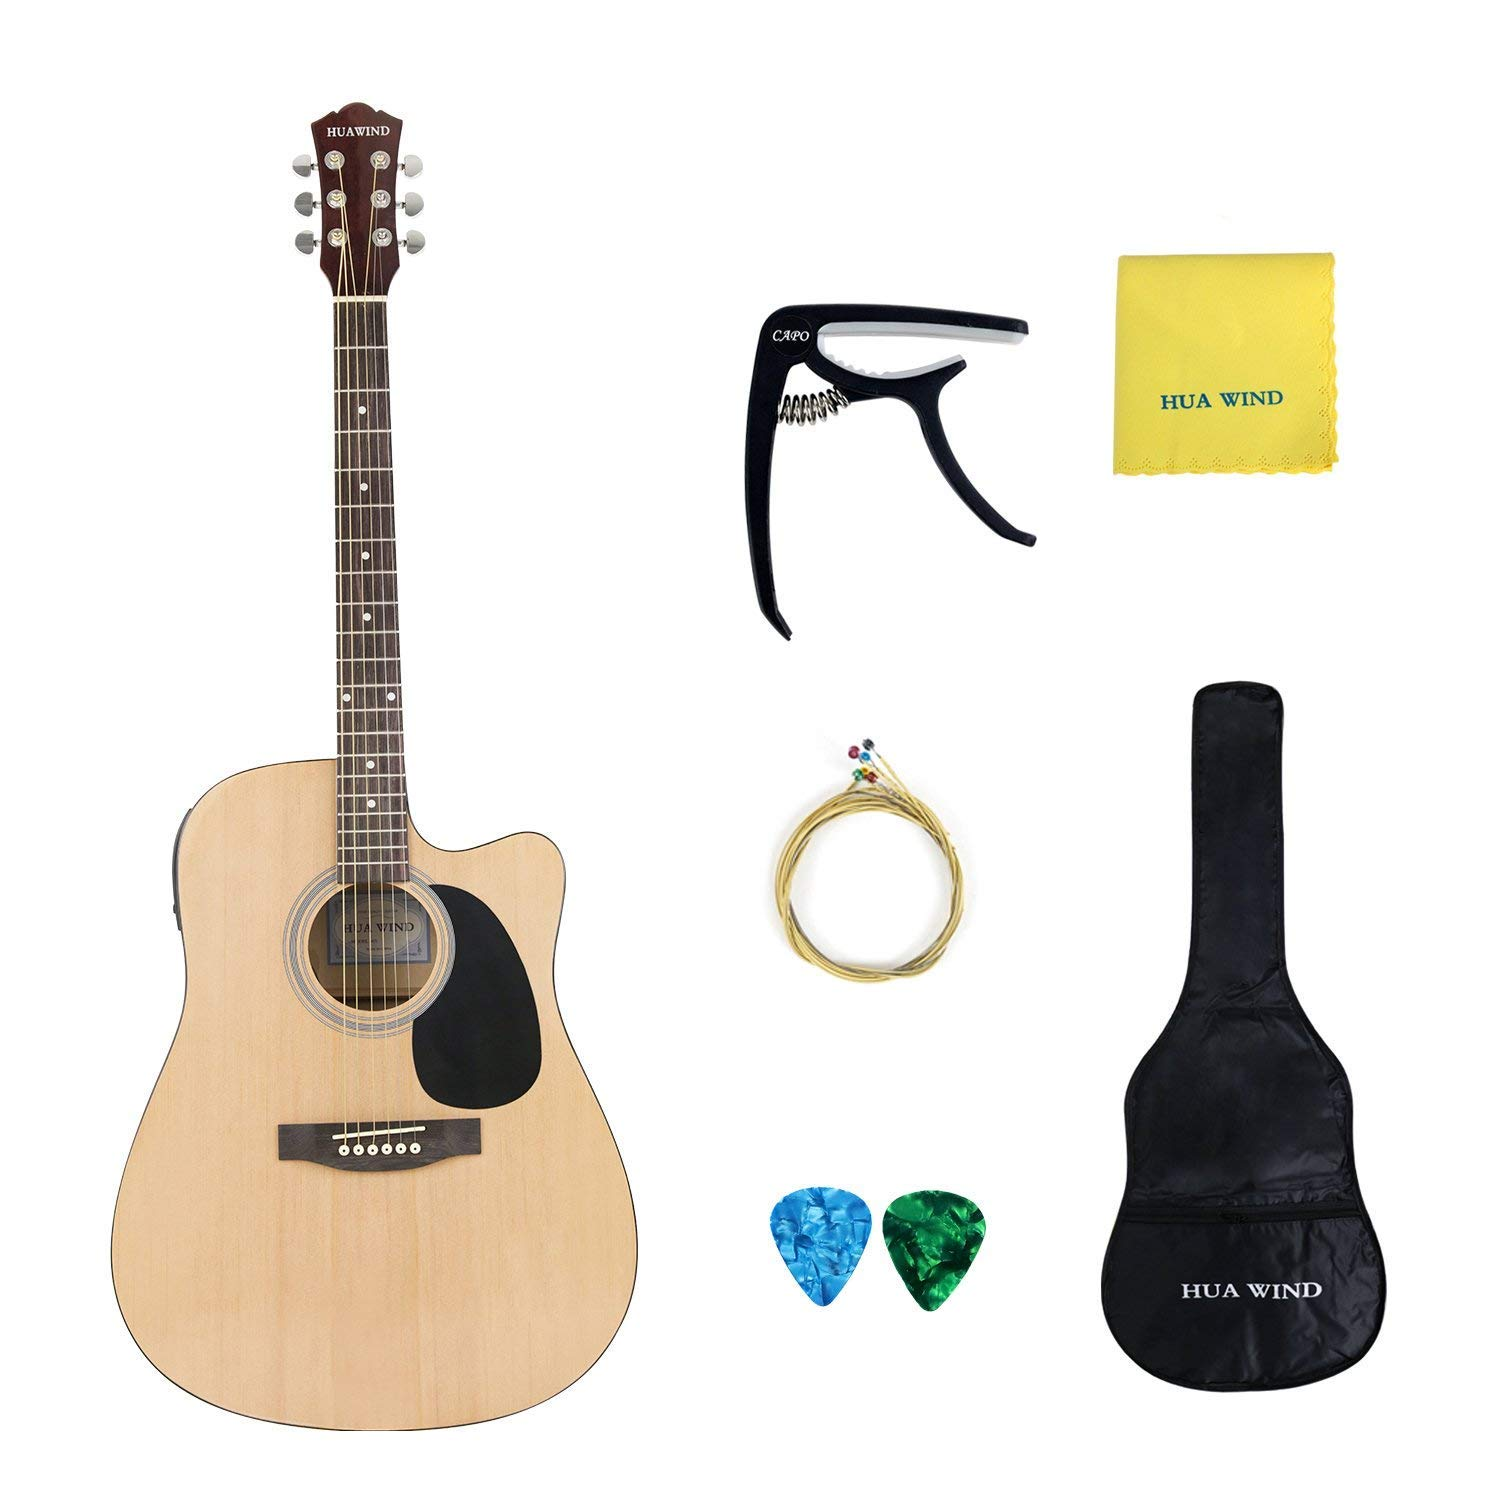 Acoustic Electric Guitar 41 inch Full Size Cutaway 5 Band EQ with Gig Bag, Capo, Strings, Picks and Polishing Cloth (41inch Acoustic Electric Guitar +5EQ)